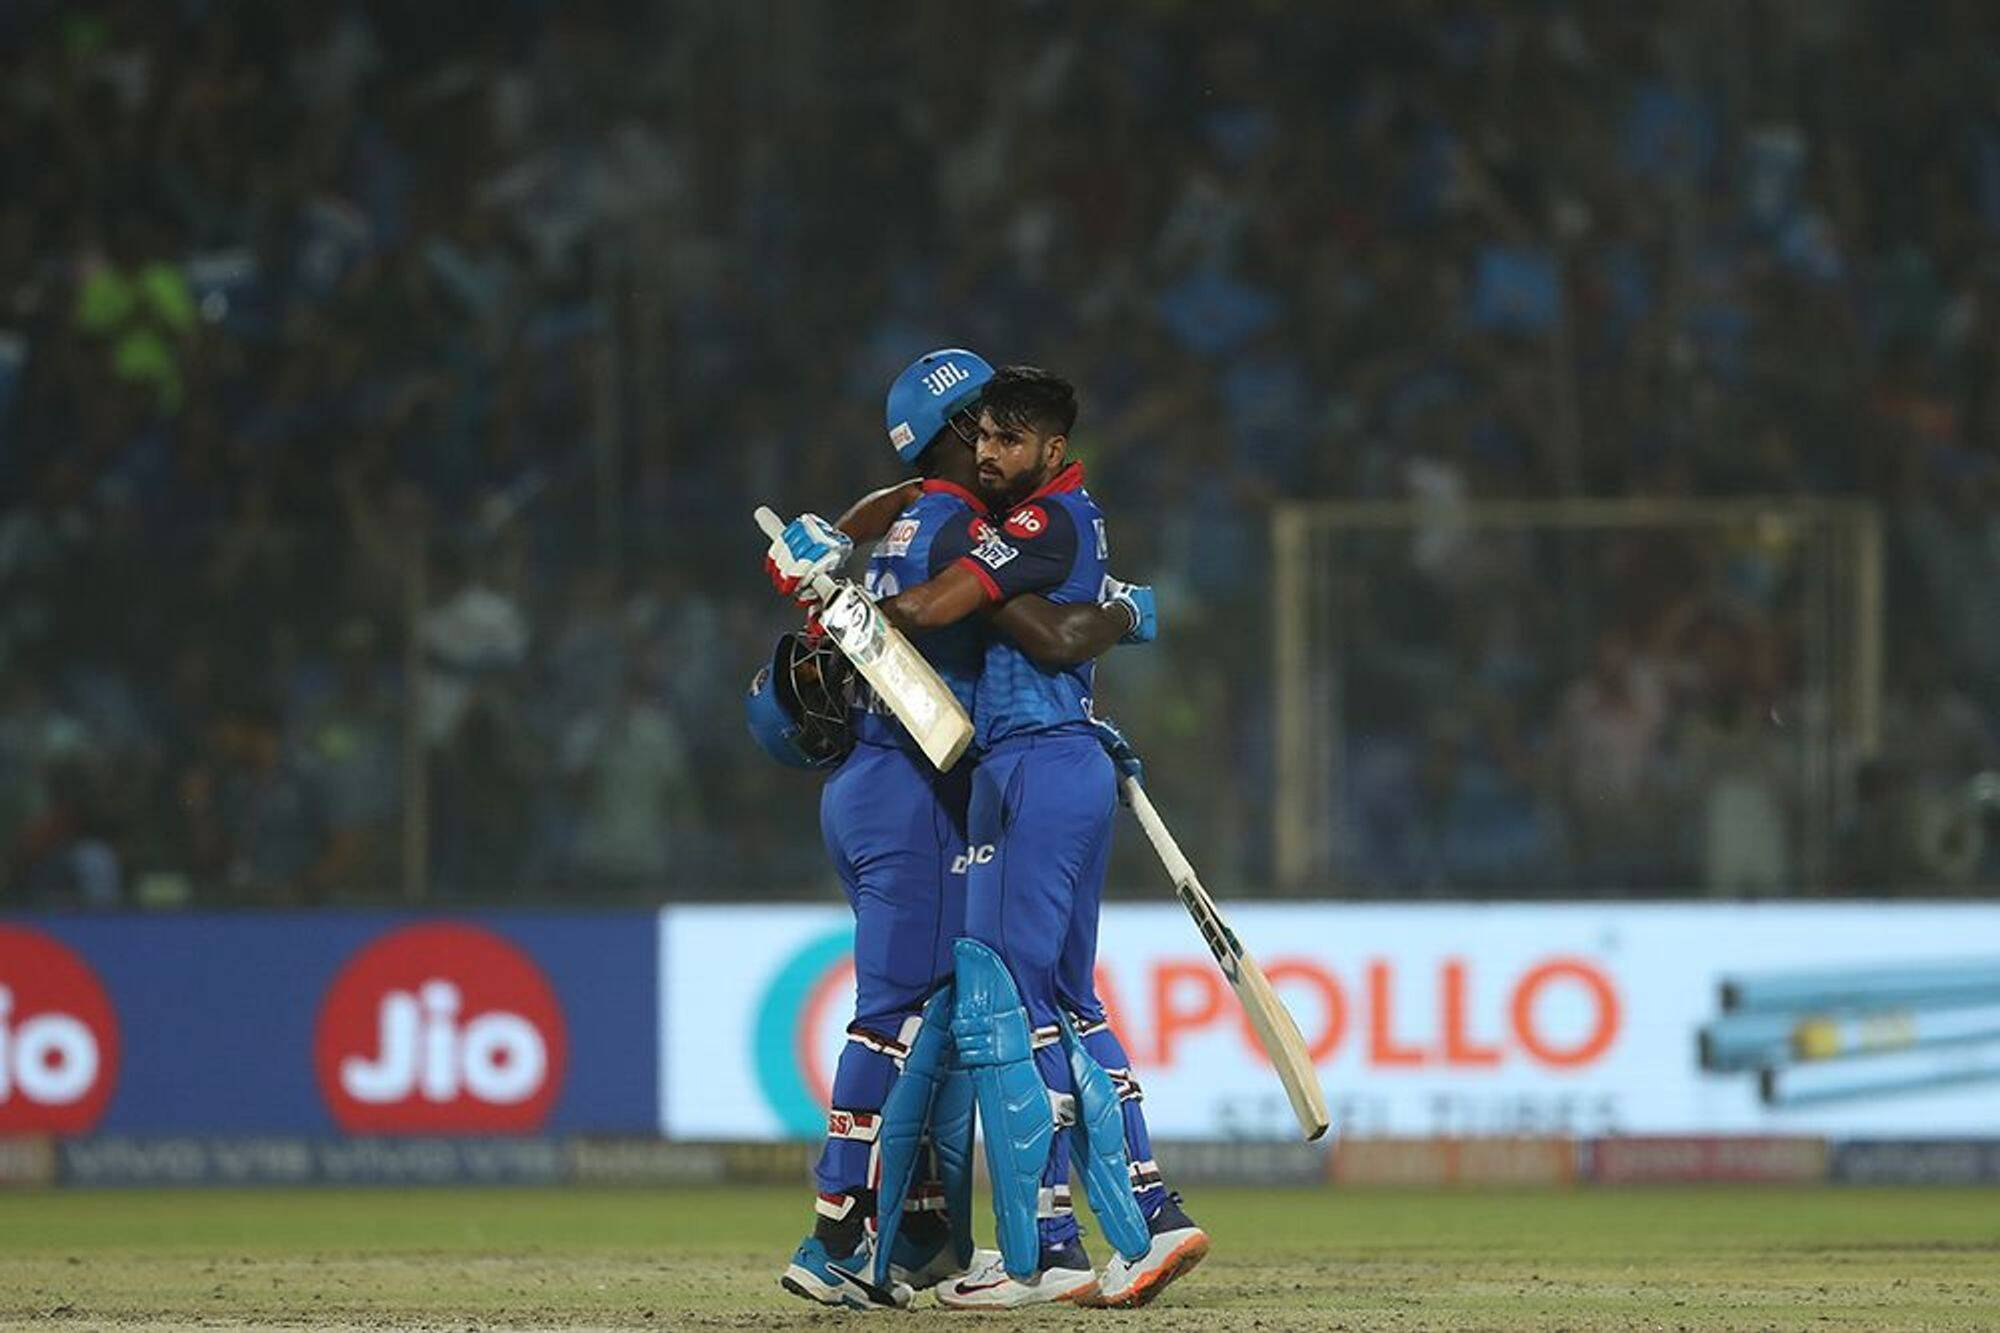 Delhi Capitals Exact Revenge With Five-Wicket Win Over Kings XI Punjab